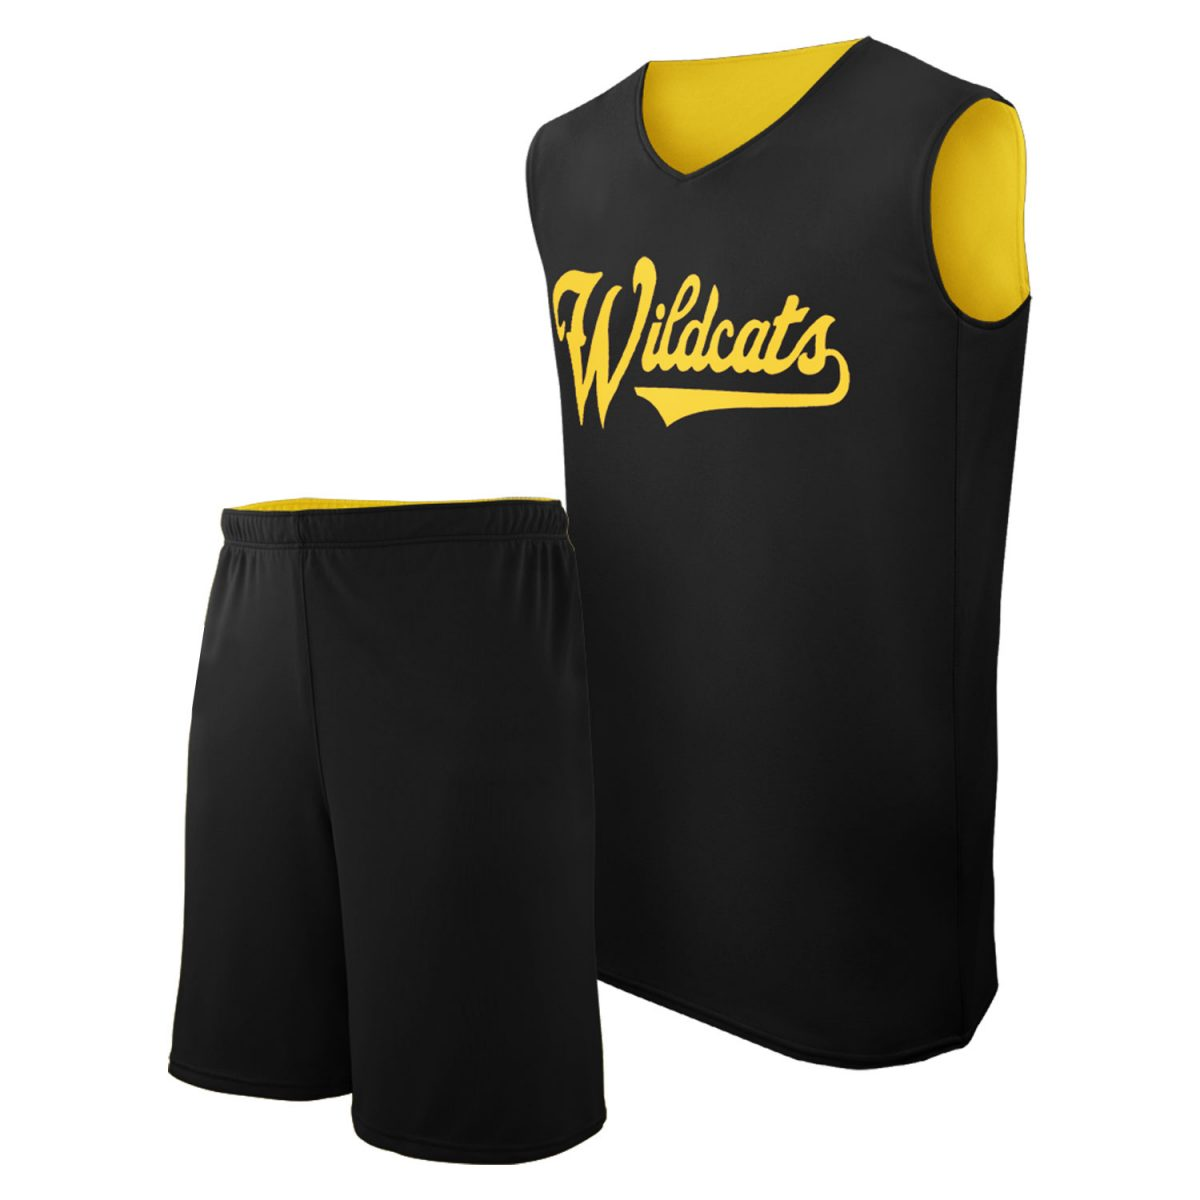 Boys Basketball Uniforms Manufacturers in Pune